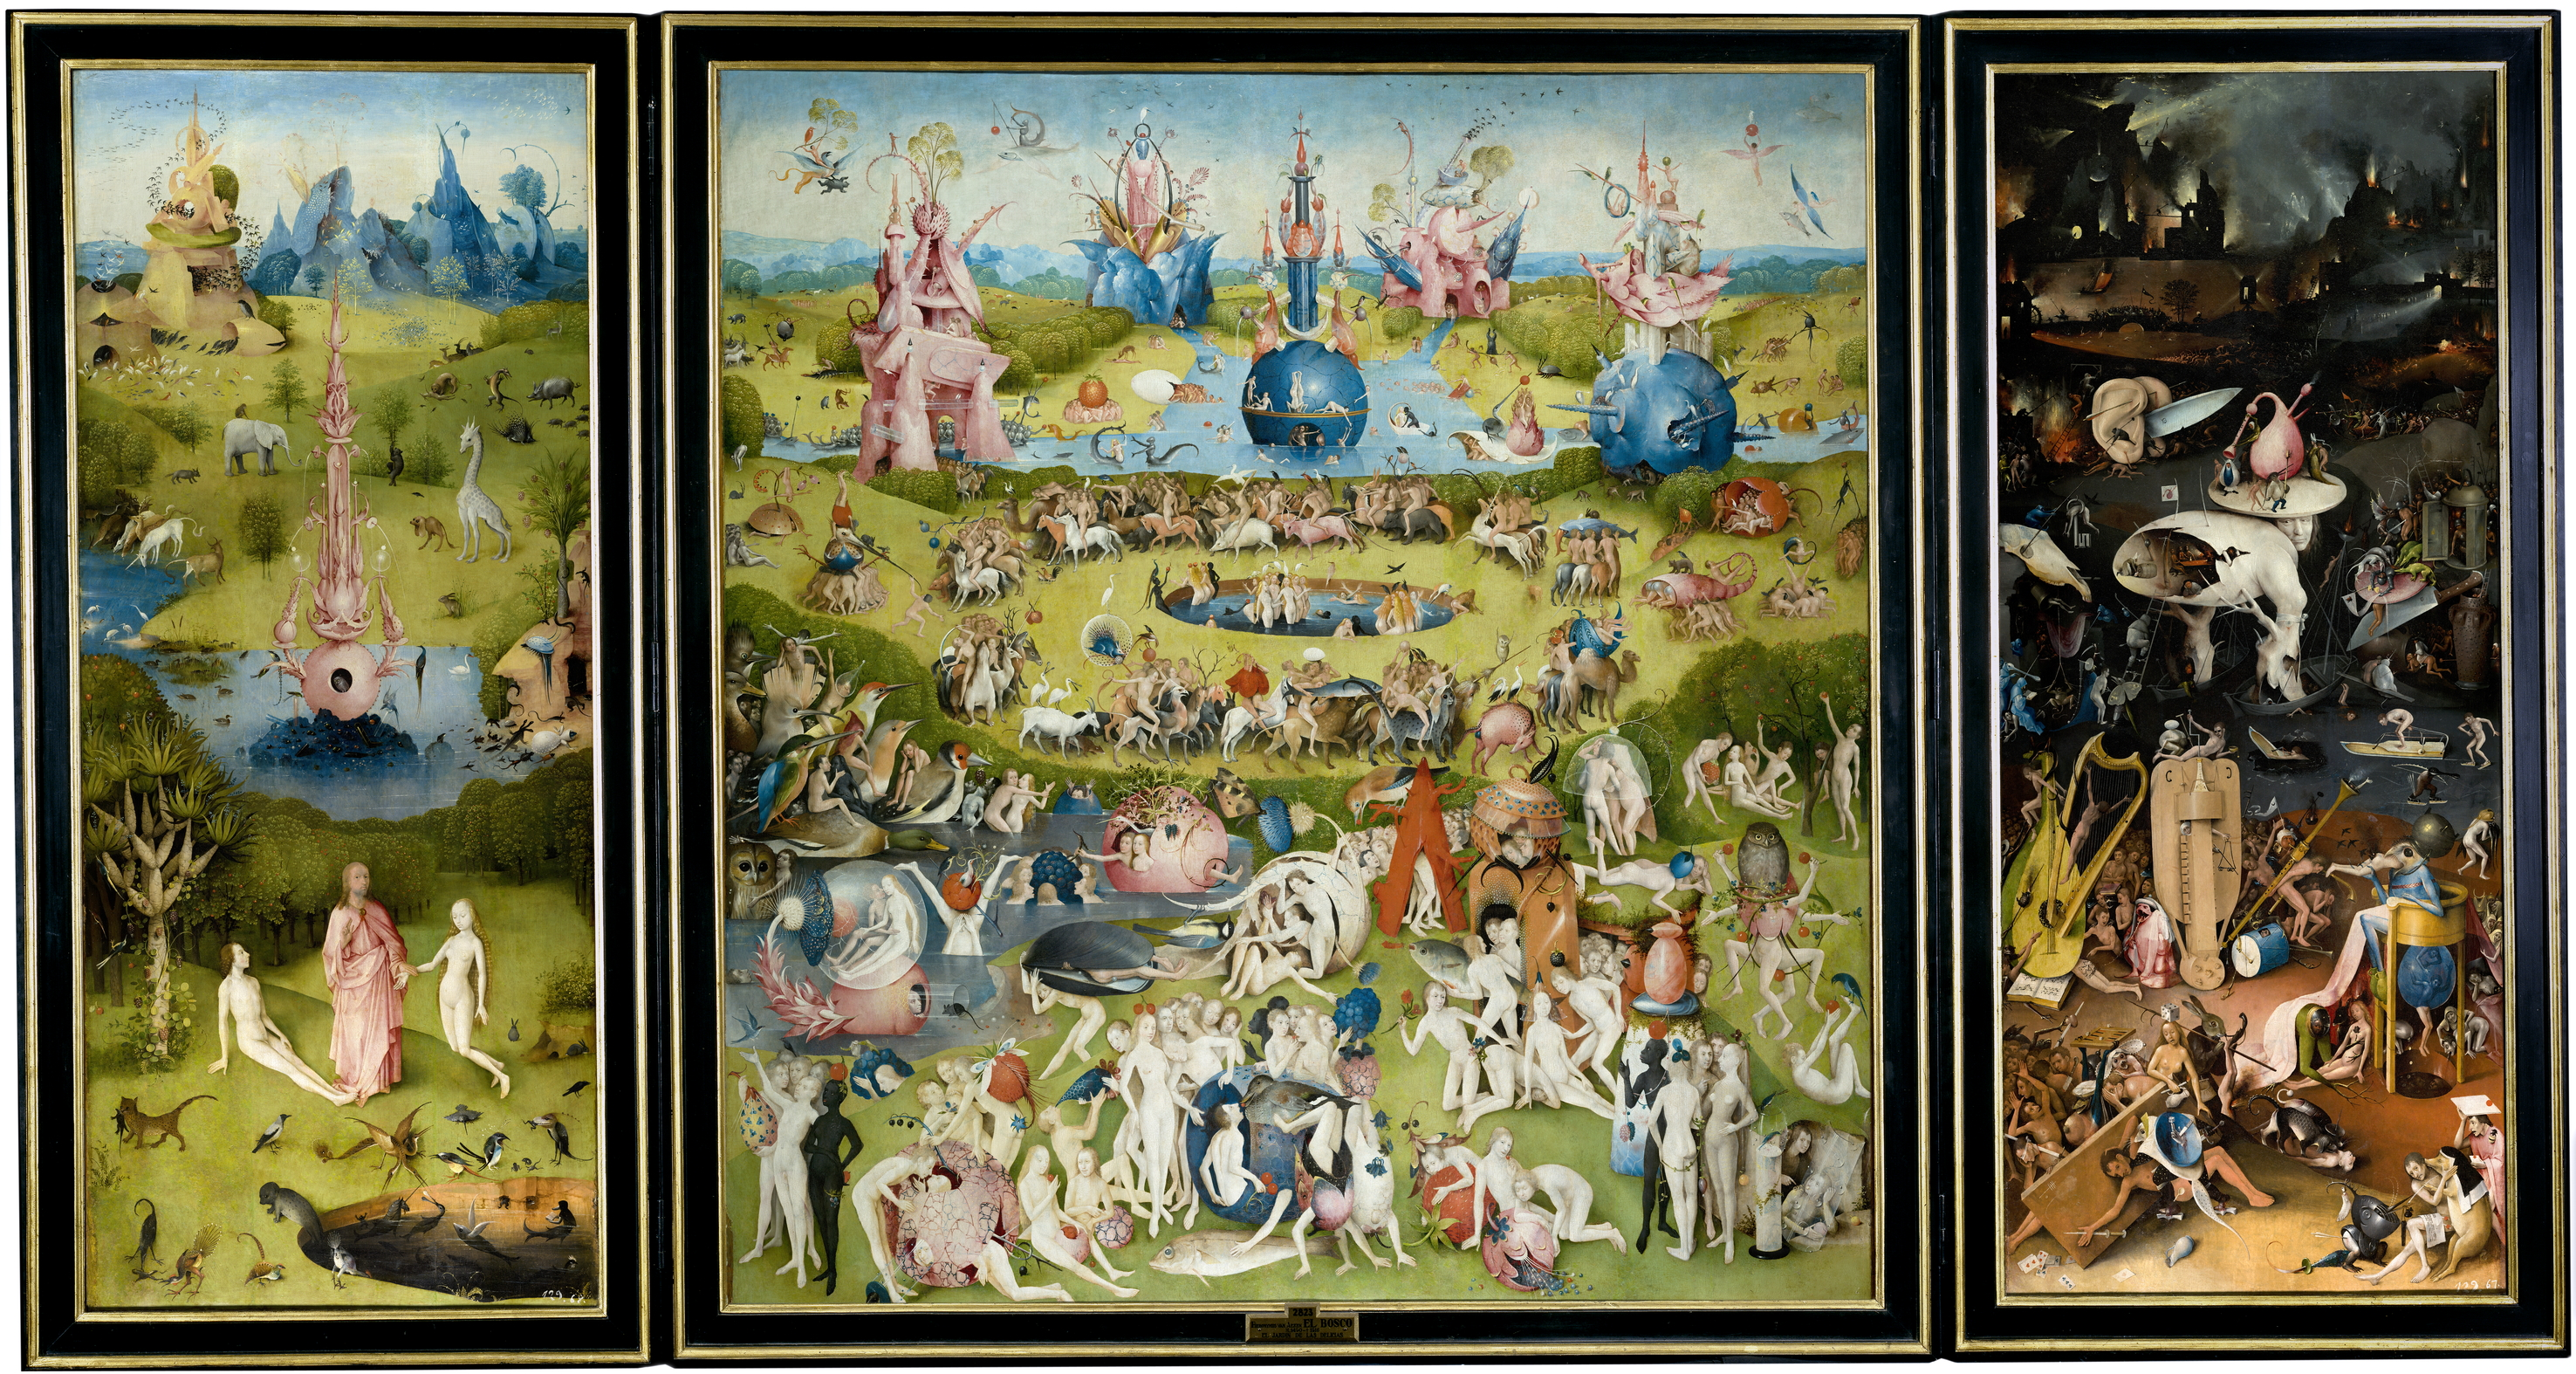 Bosch's The Garden of Earthly Delights